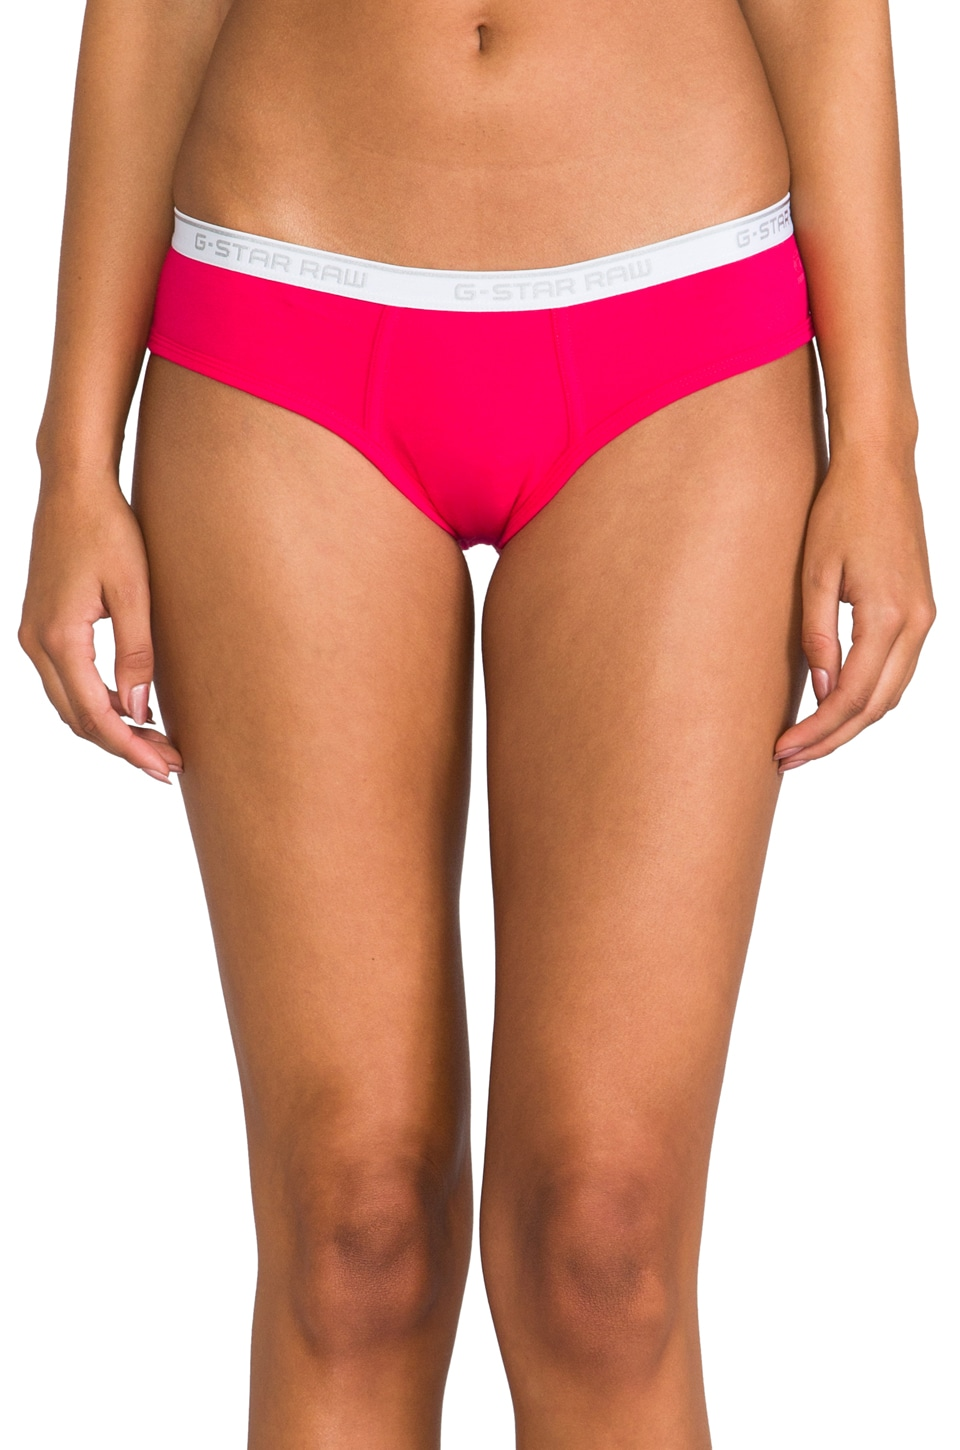 G-Star Brief in Magenta